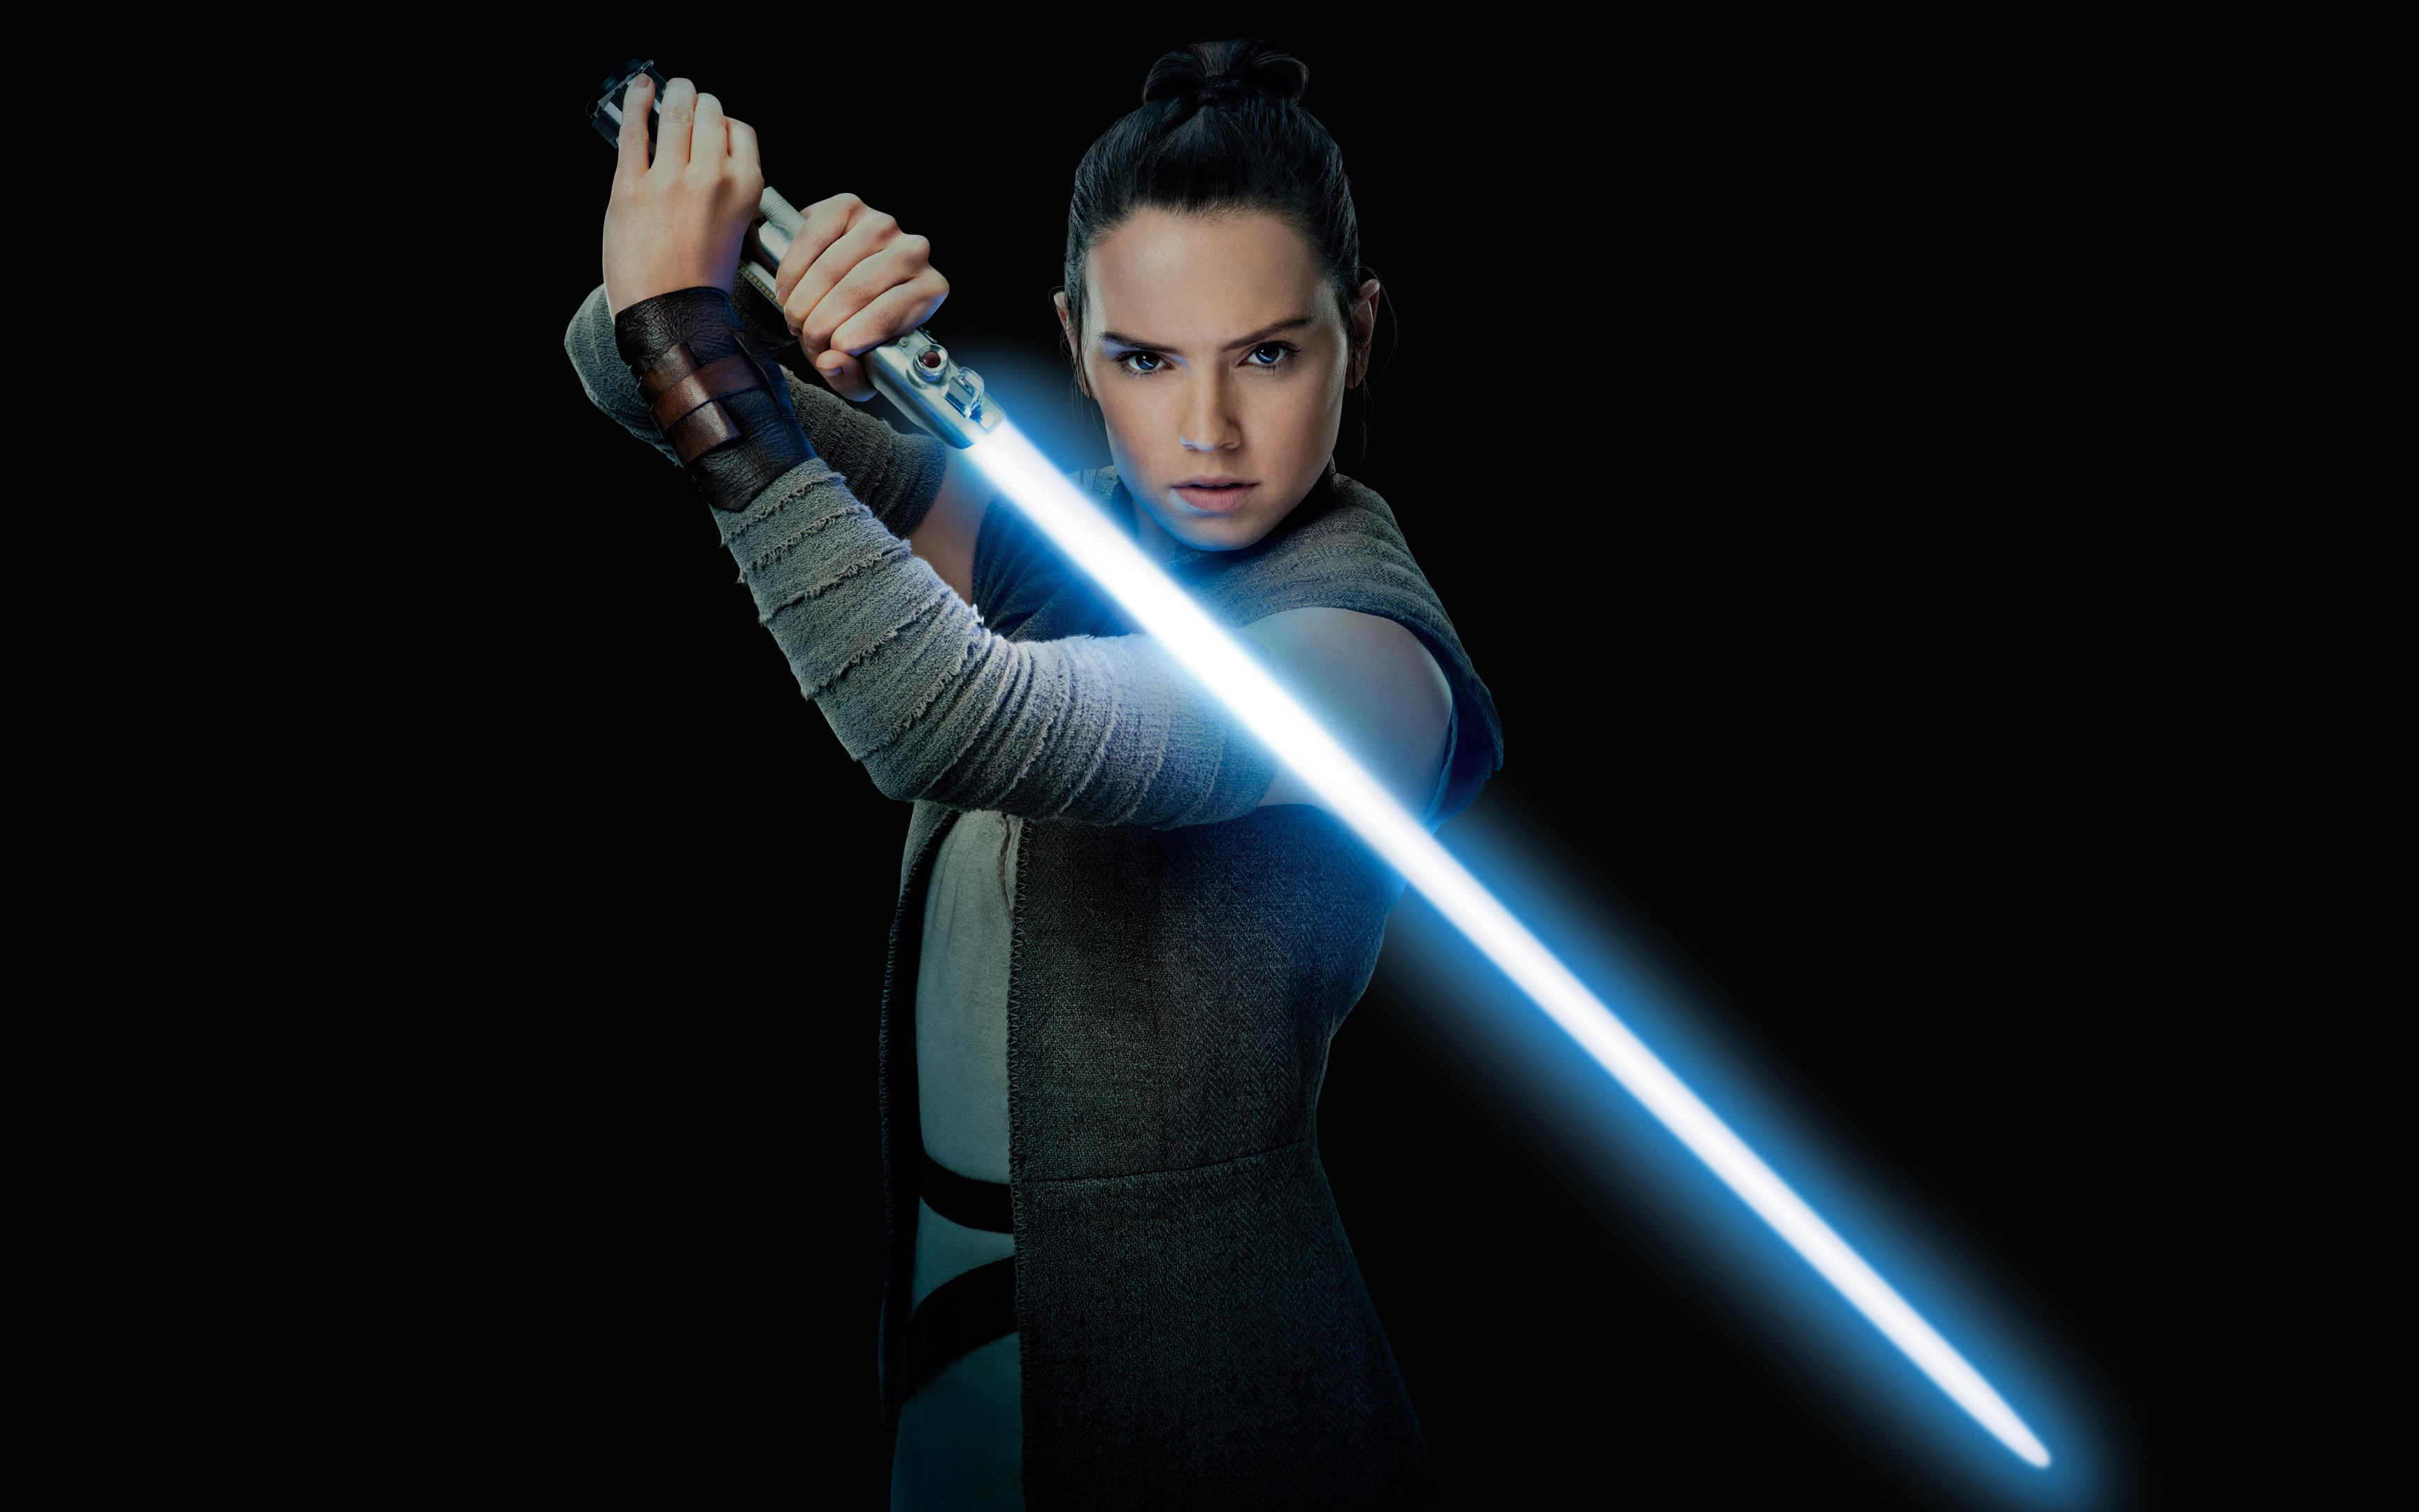 daisy ridley as rey star wars in the last jedi 4k